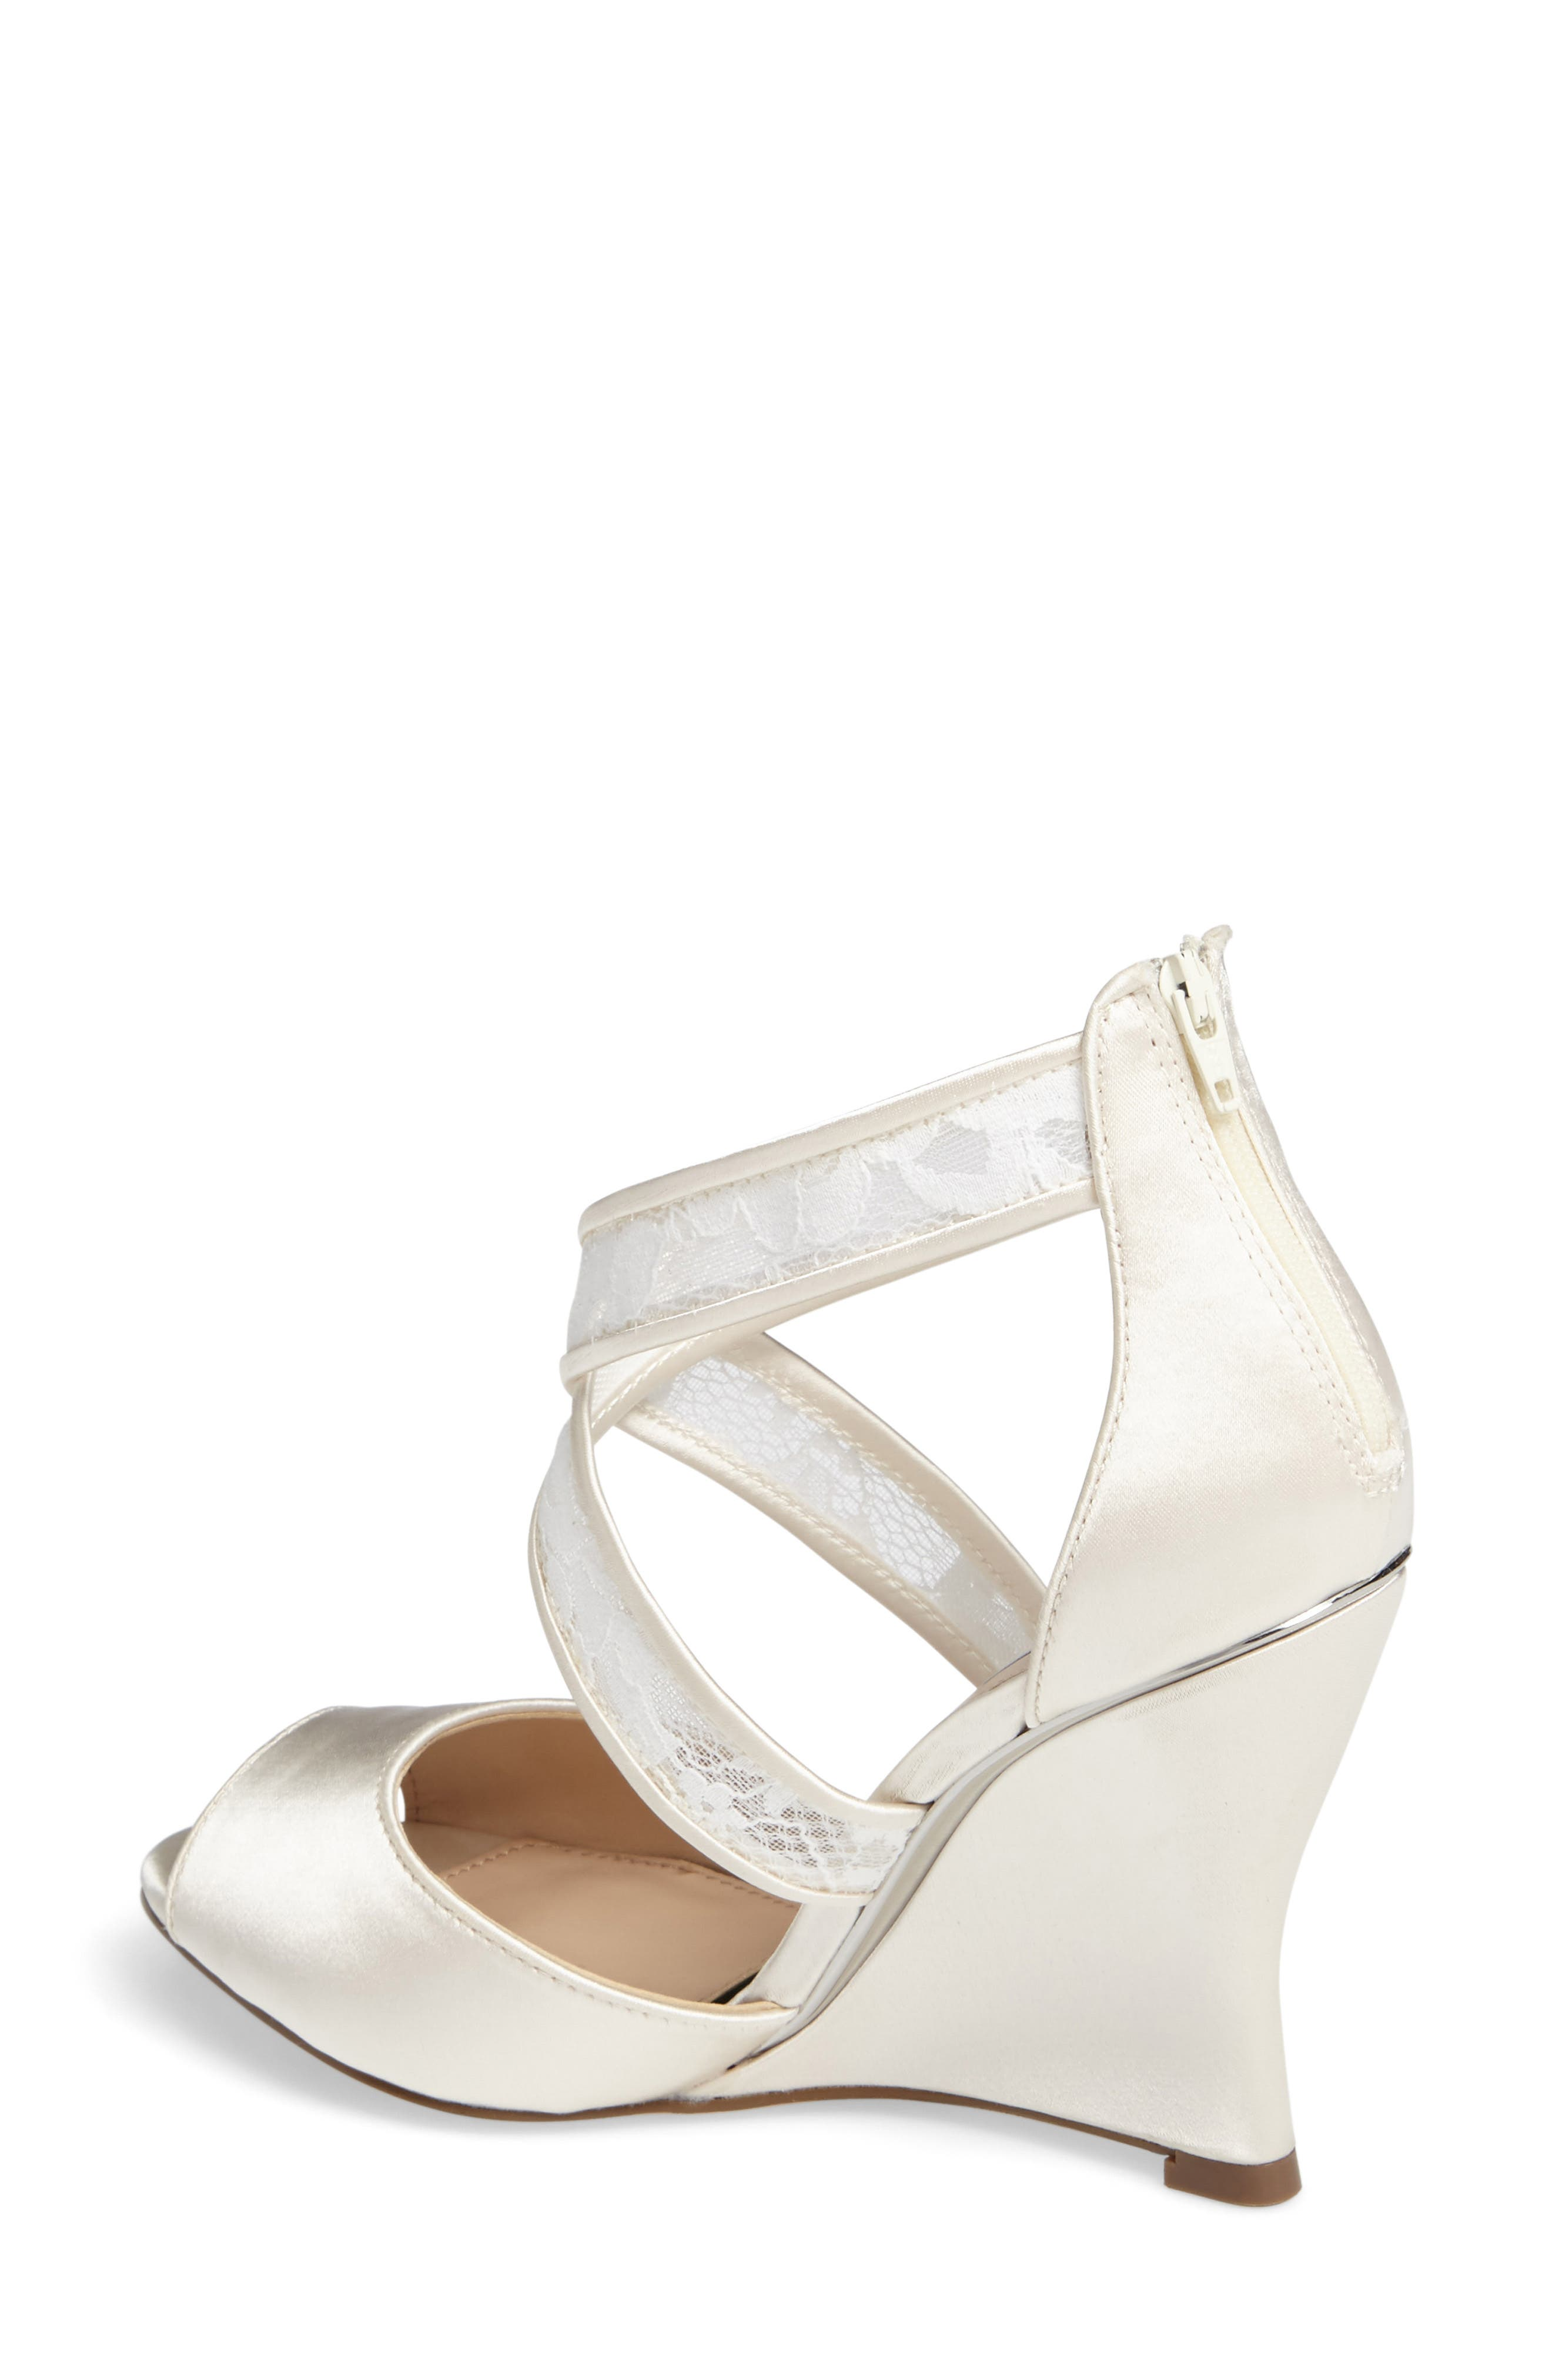 NINA, Elyana Strappy Wedge Sandal, Alternate thumbnail 2, color, IVORY SATIN